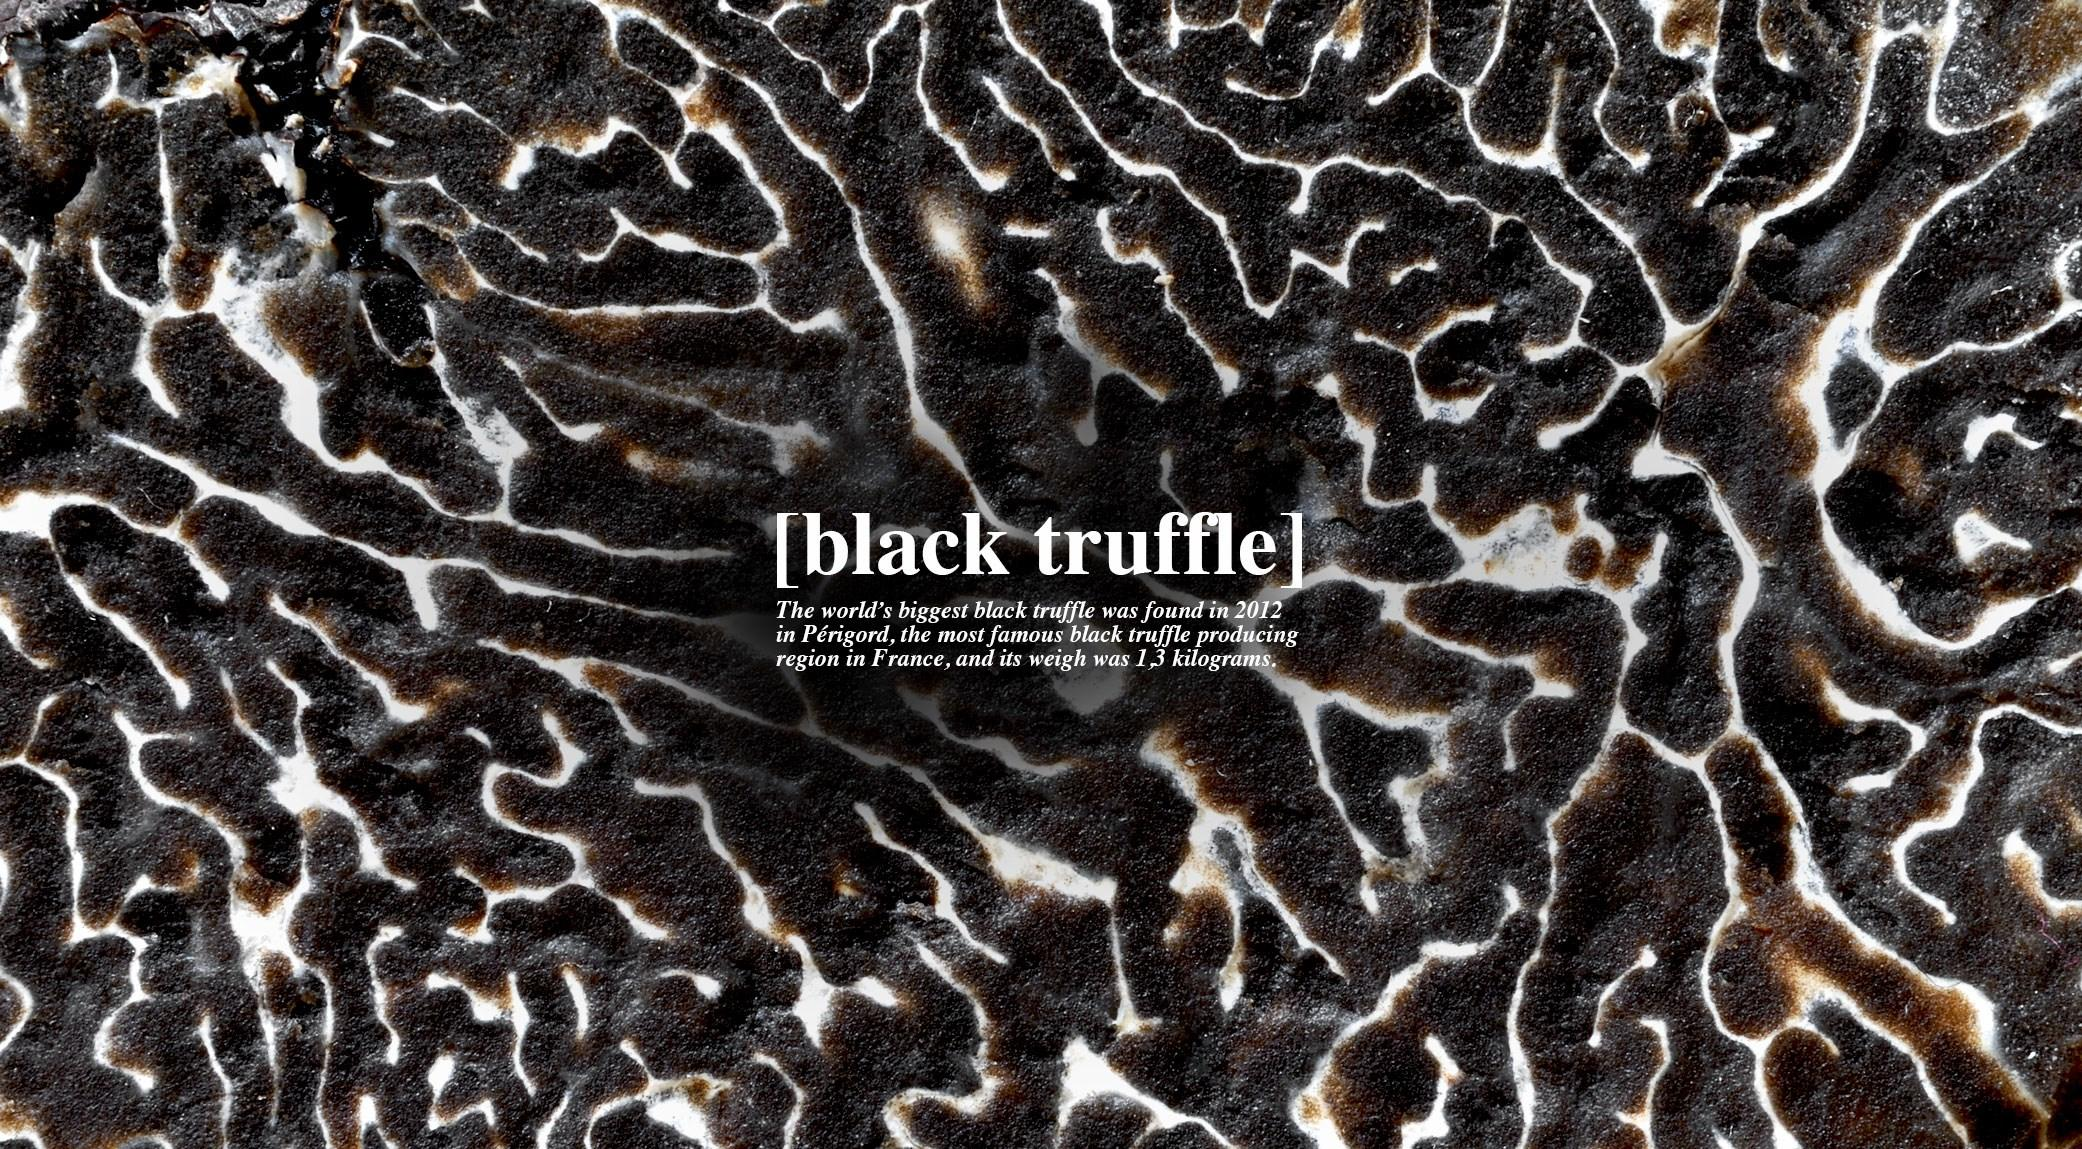 005-black-truffle-finedininglovers